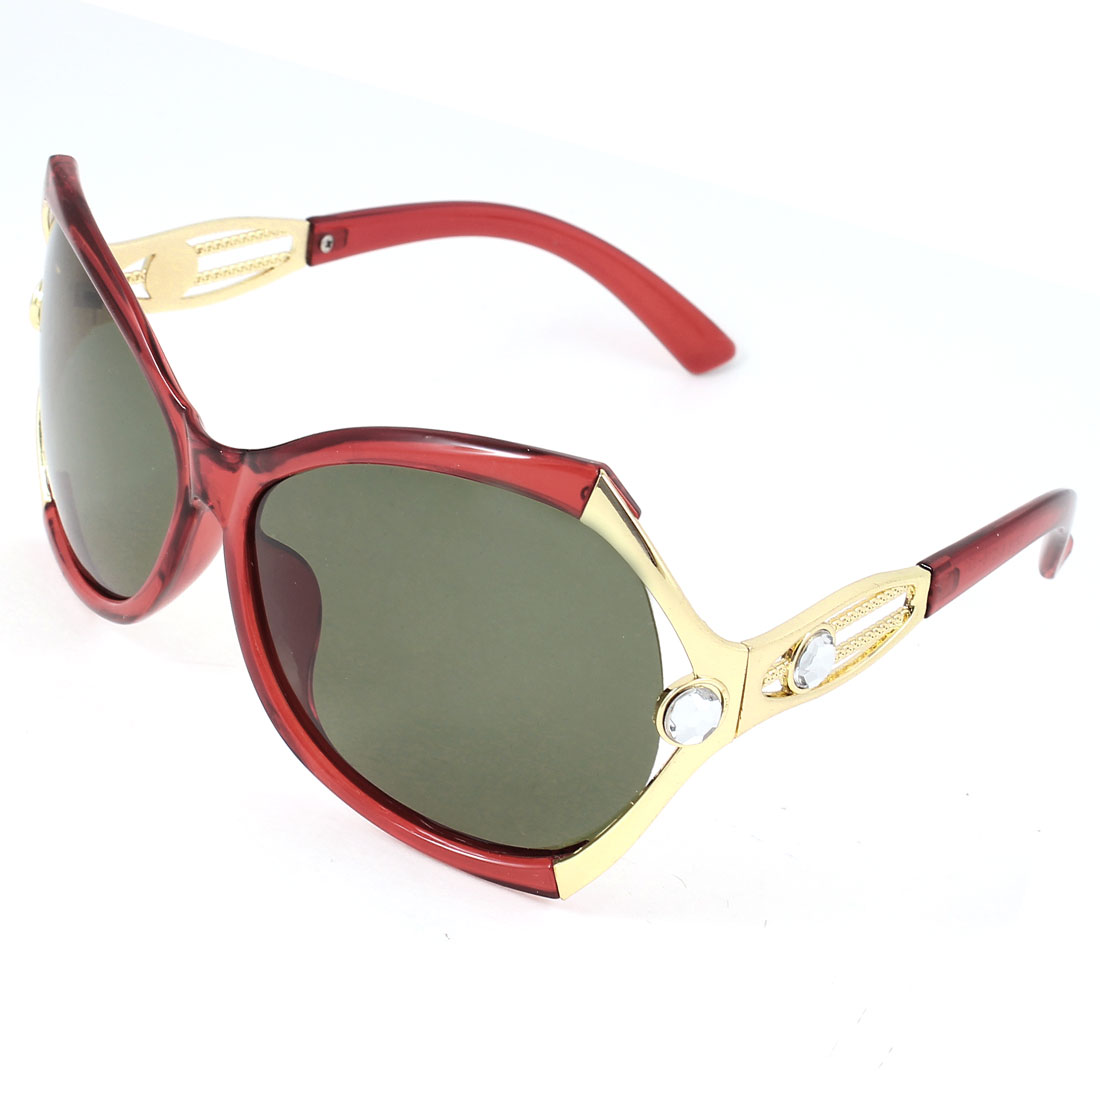 Single Bridge Red Plastic Full Rim Frame Grey Green Lens Faux Crystal Metal Accent Temple Leisure Polarized Glasses Sunglasses for Woman